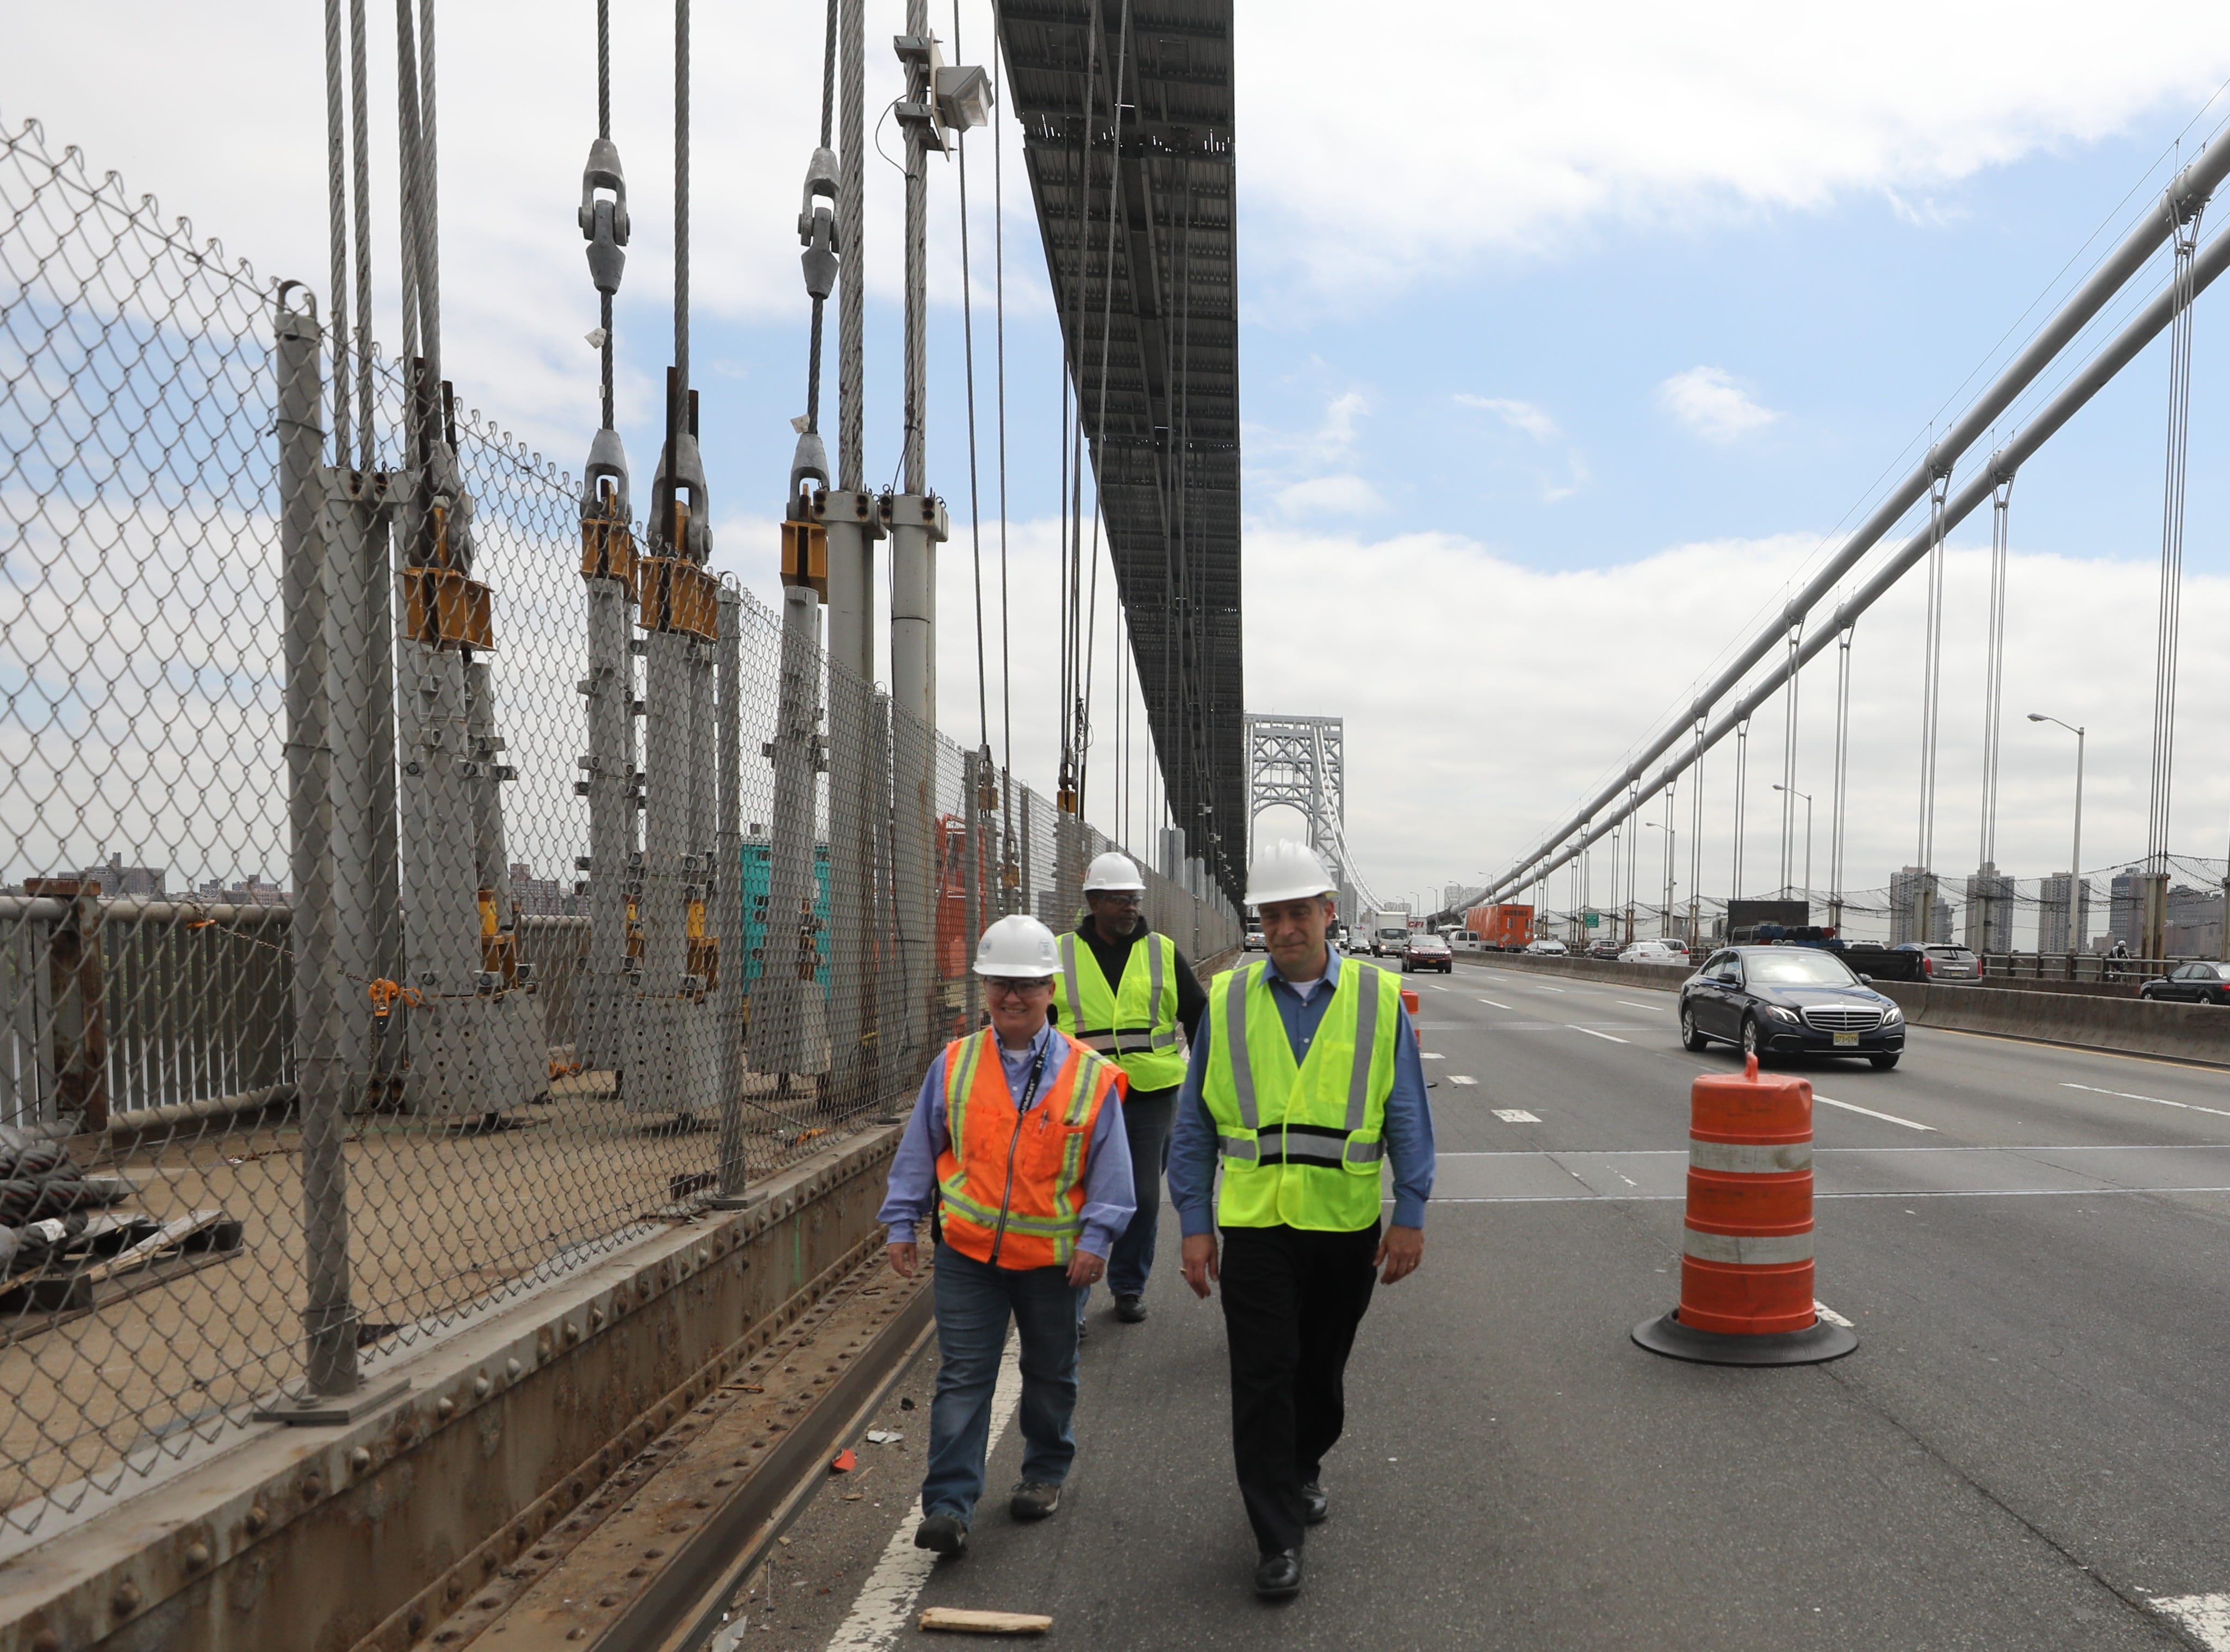 Amanda Rogers, lead engineer on the Restore the George program and Ken Sagrestano, general manager of the George Washington Bridge walk along the roadway past the large construction project on the north side of the bridge.